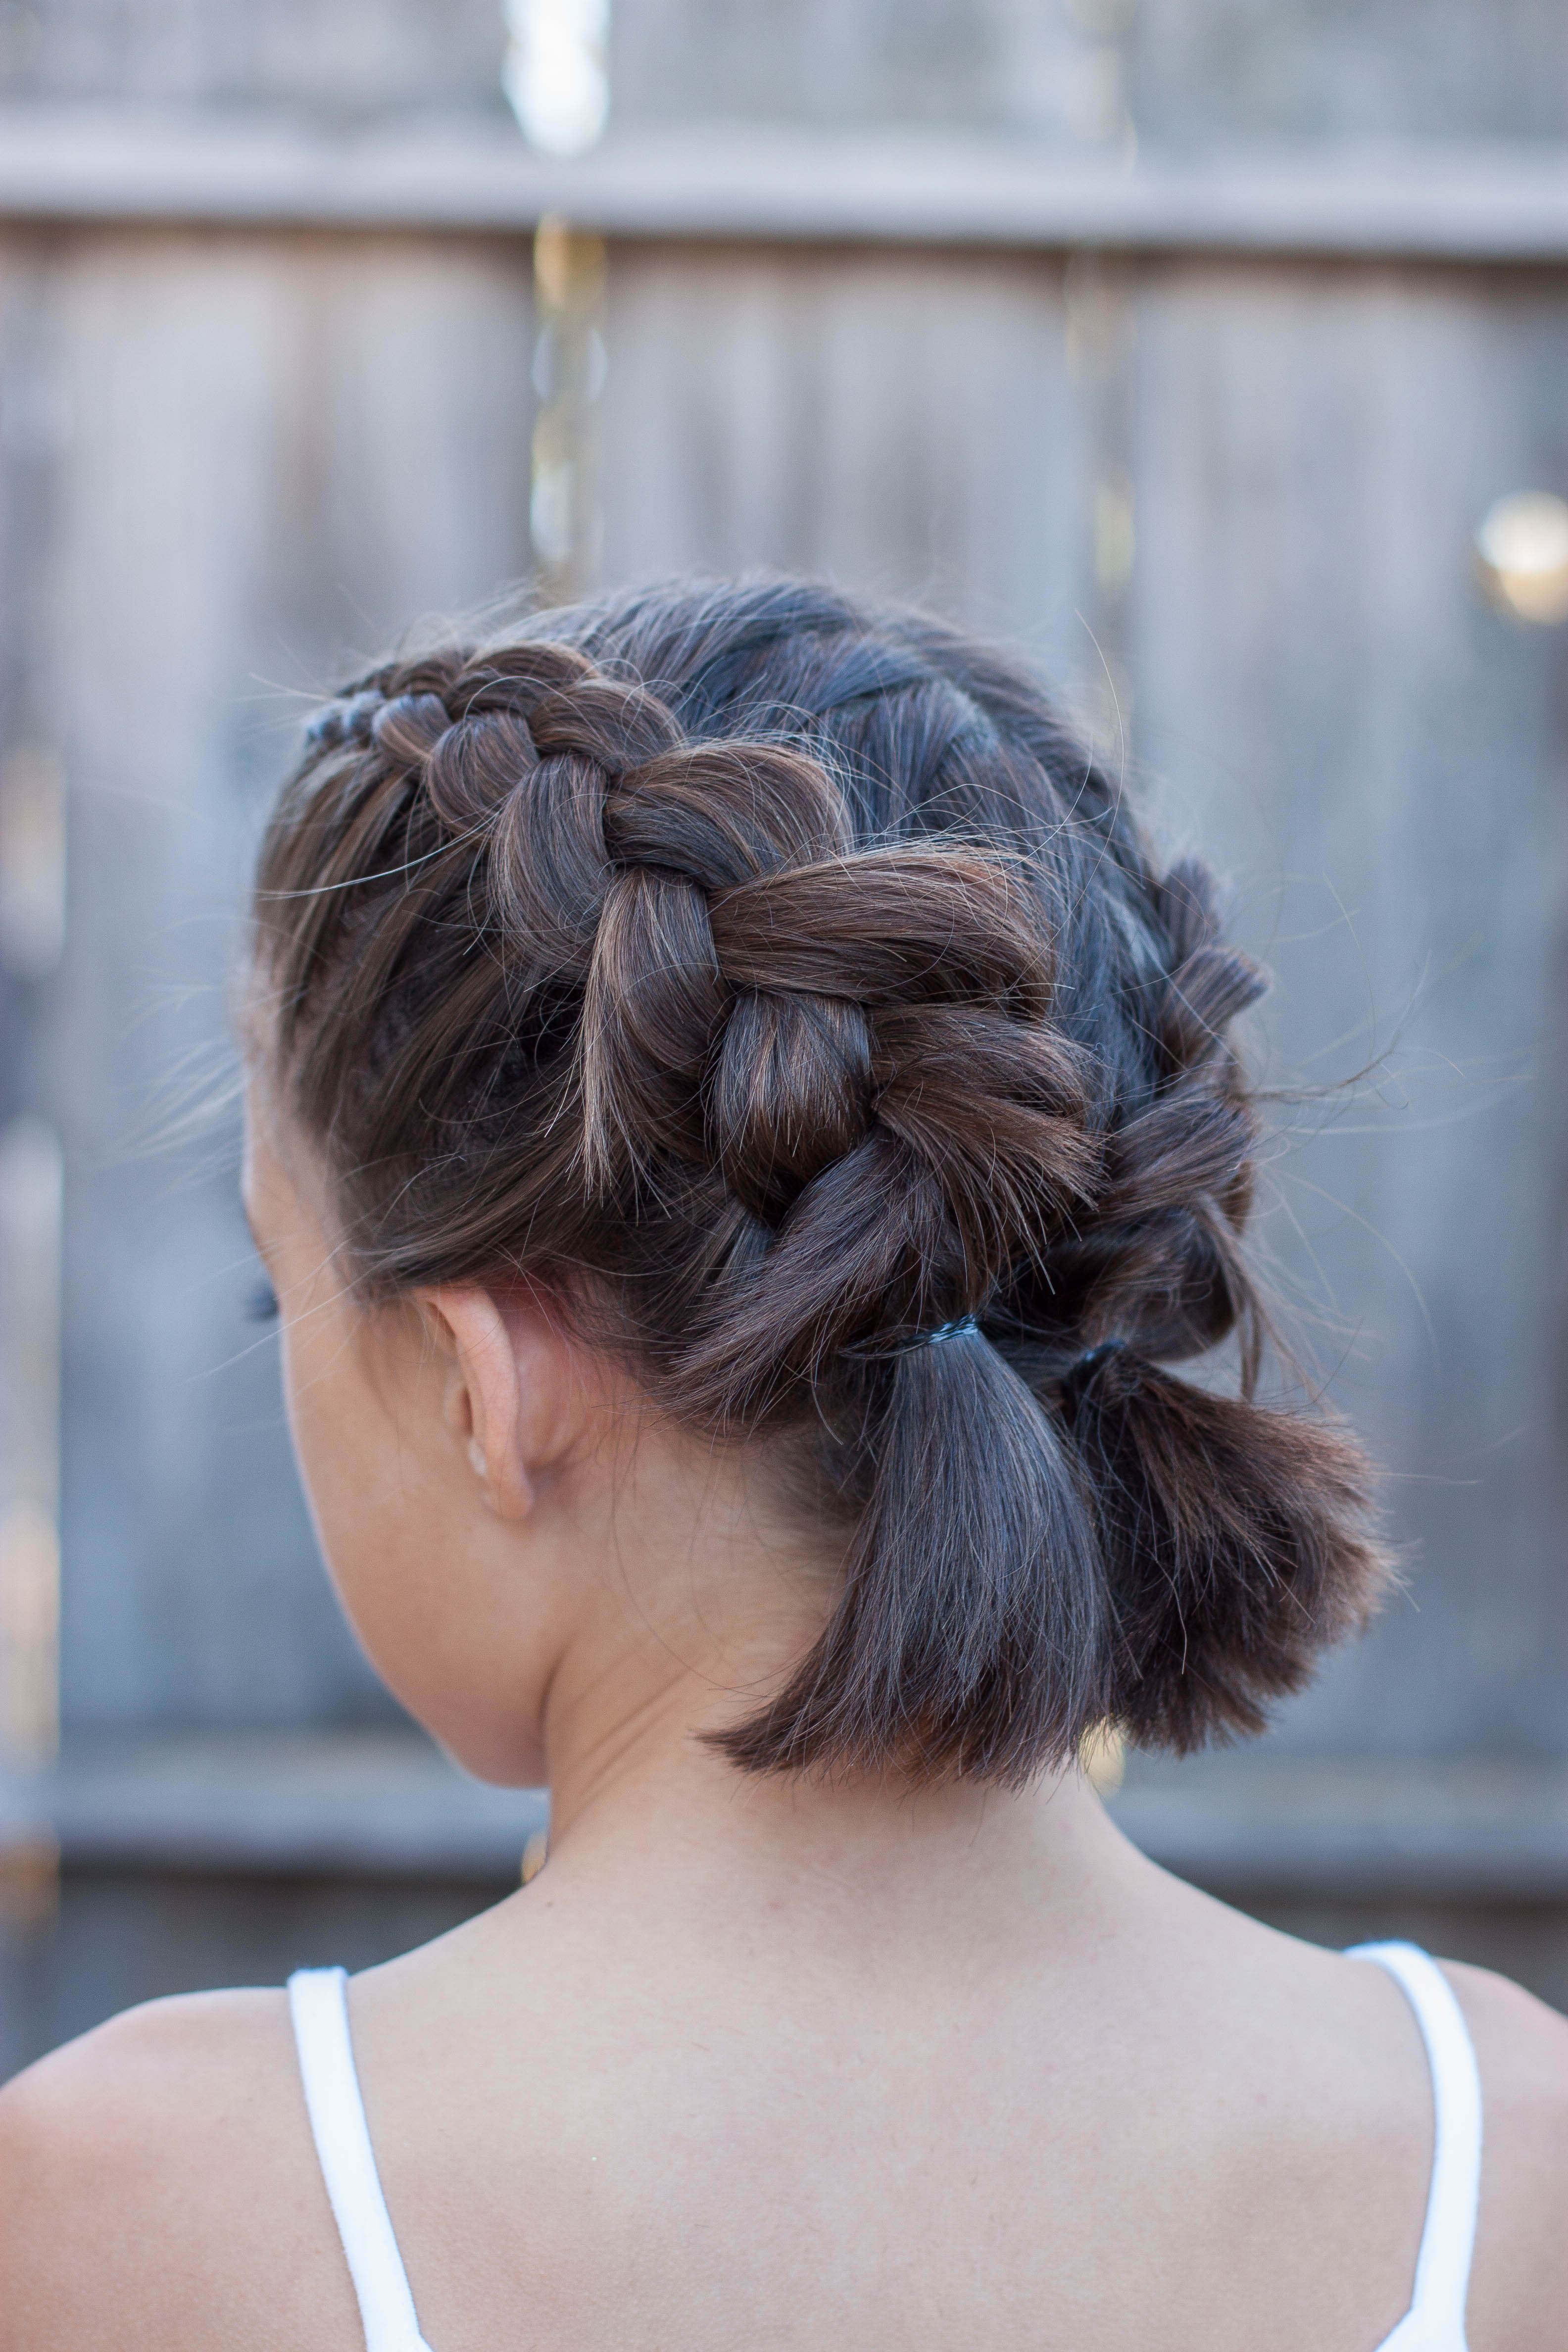 5 Braids For Short Hair (View 5 of 20)